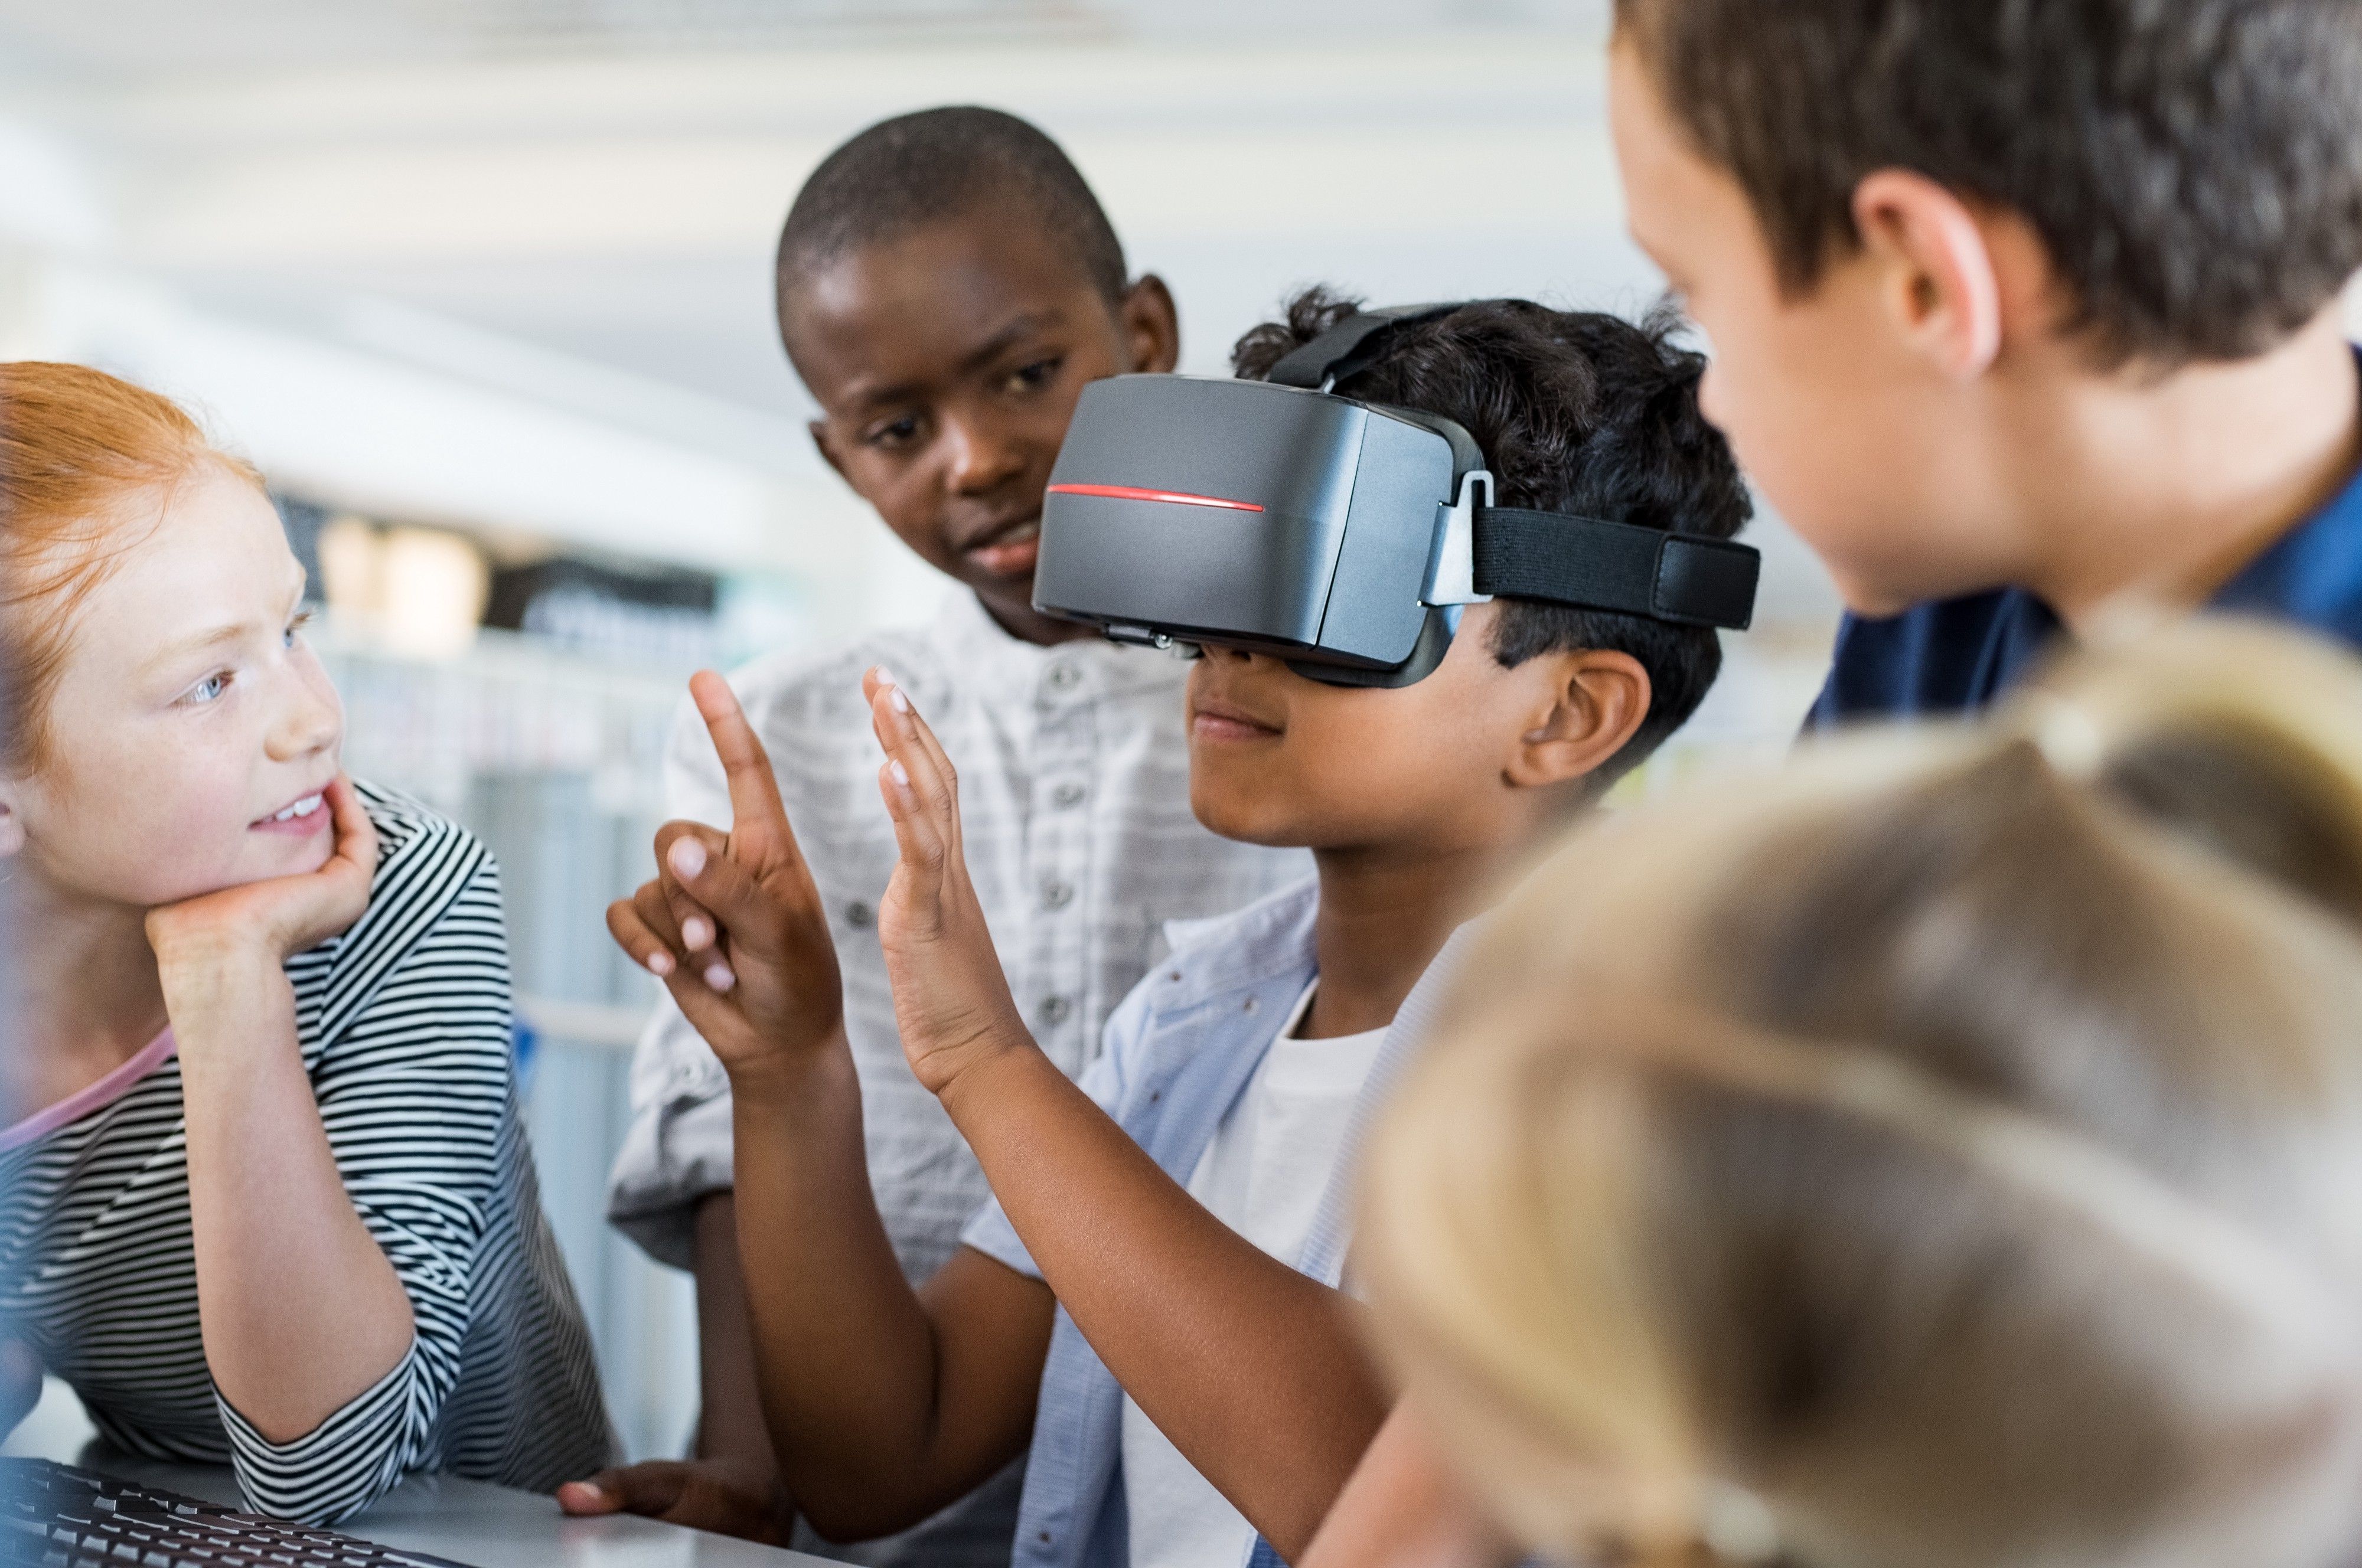 The use of virtual reality in schools motivates students